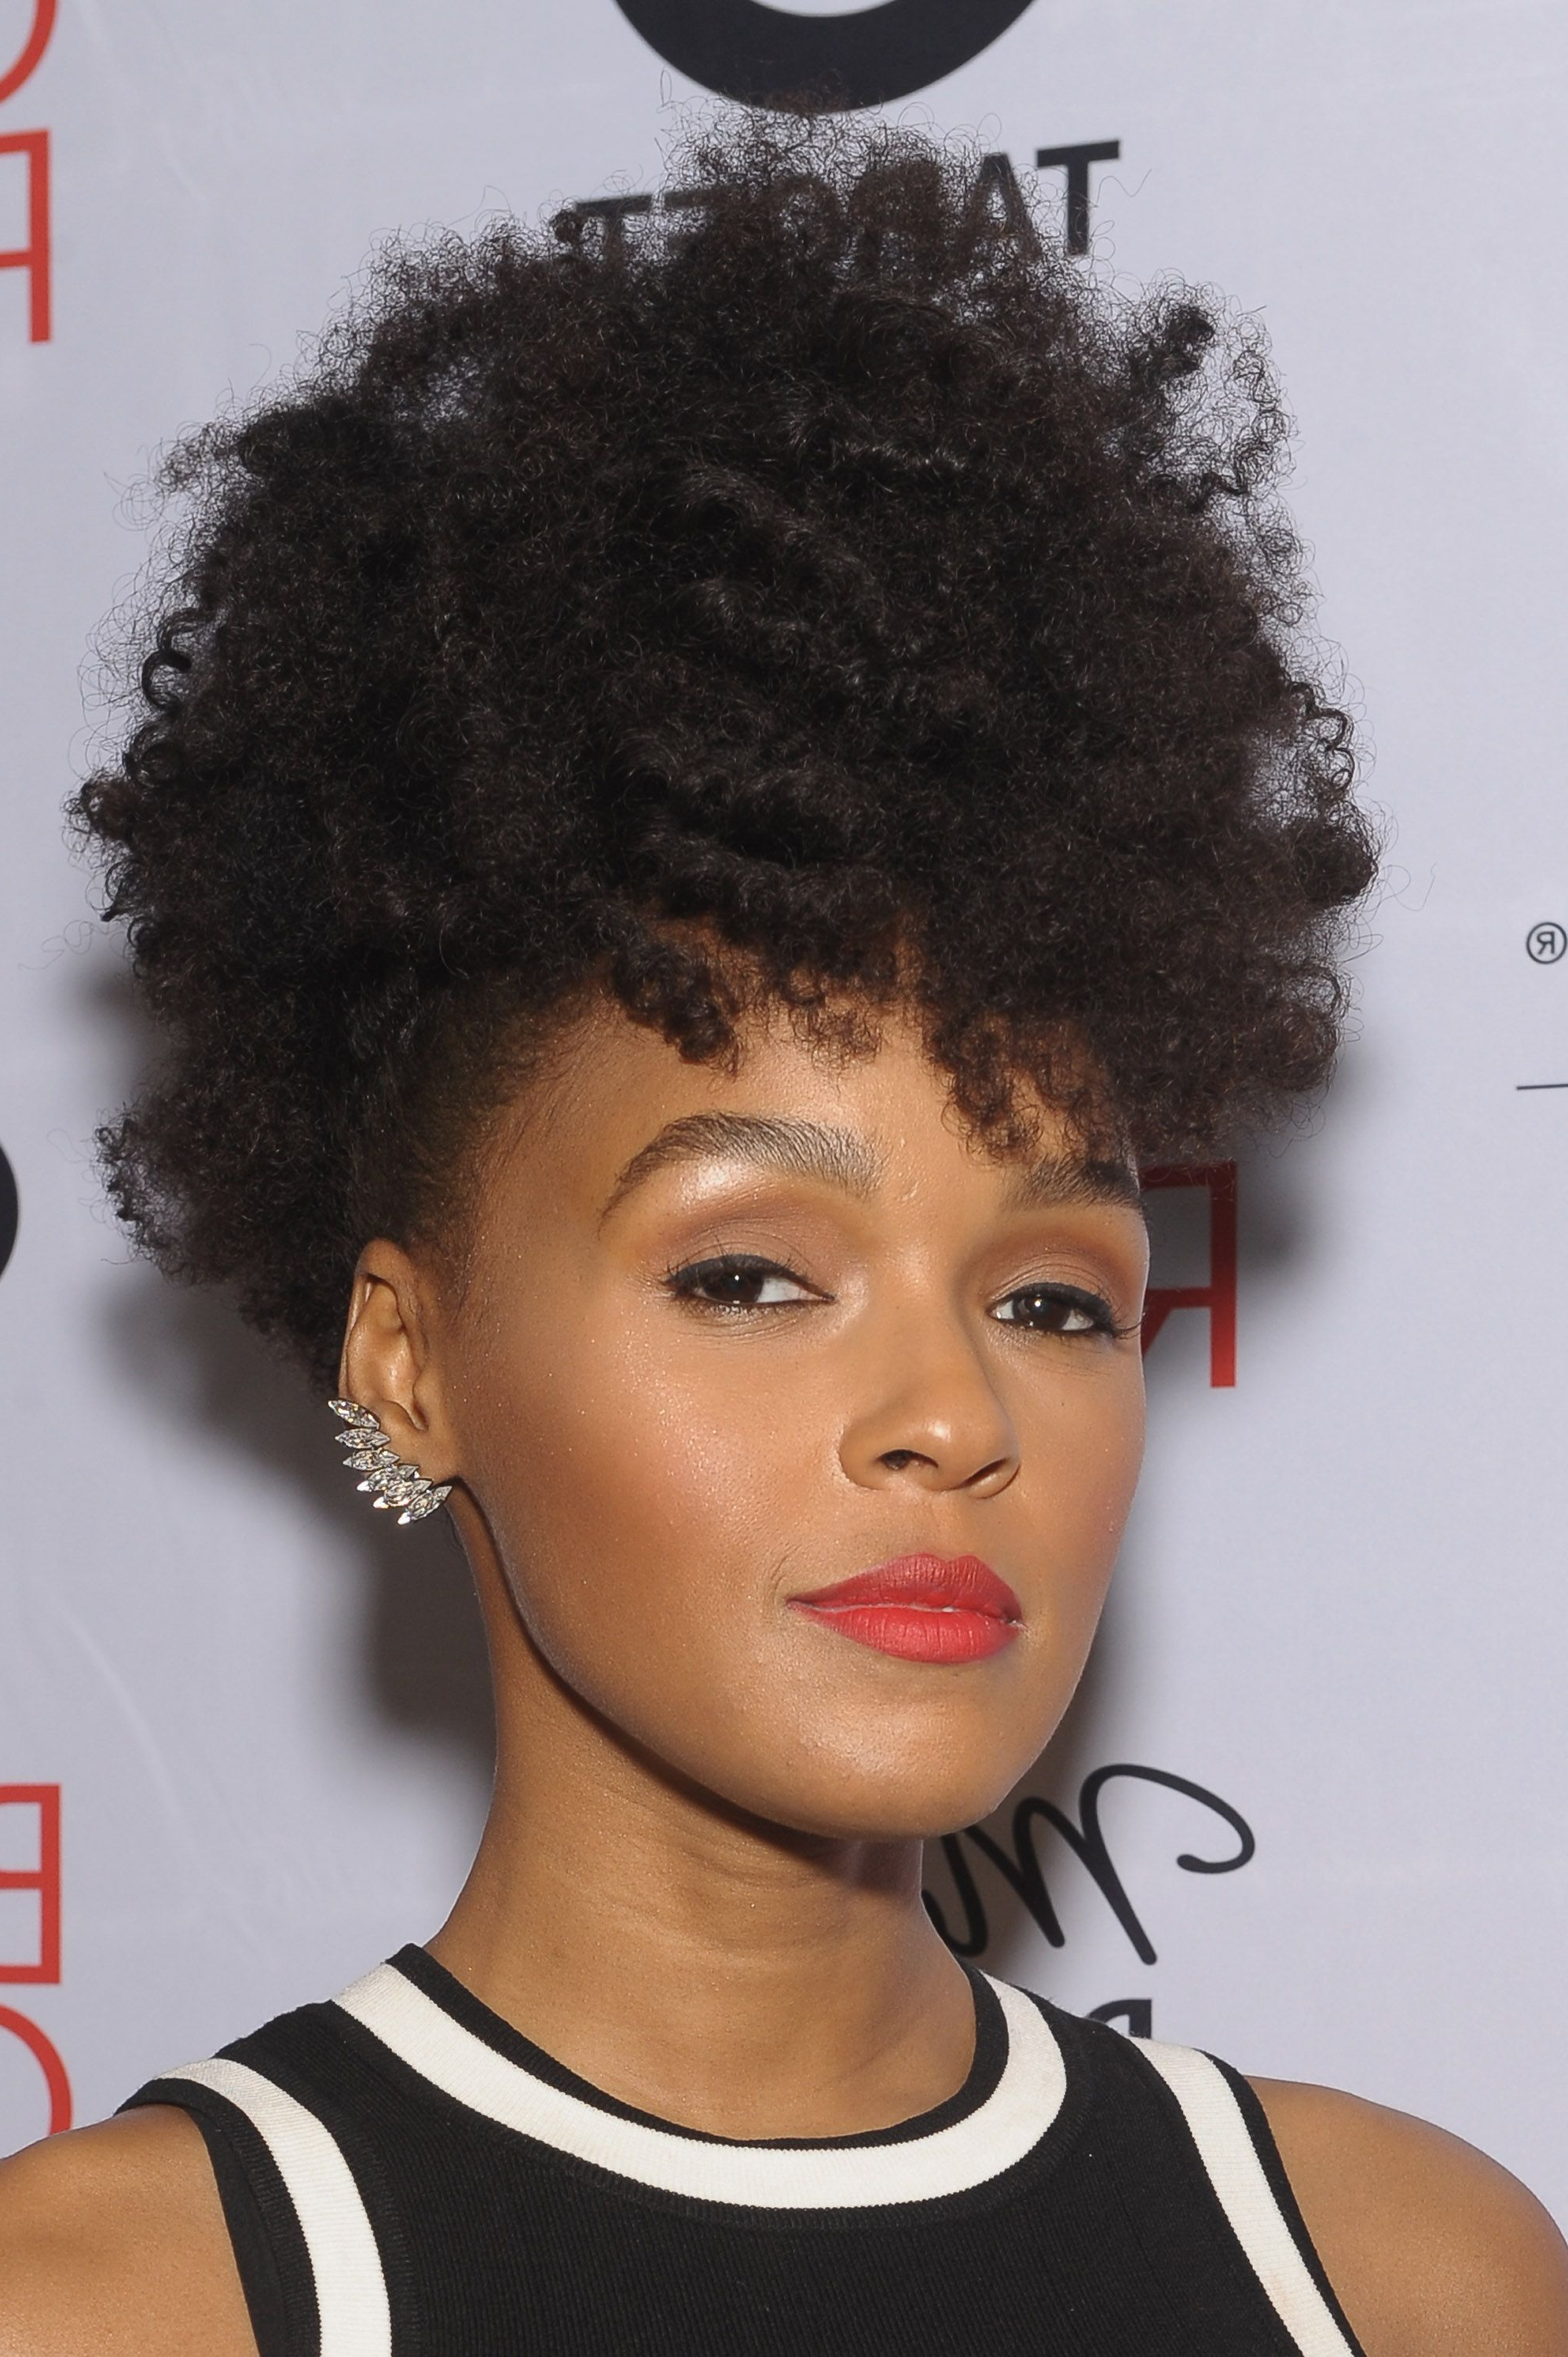 Curly Hairstyles 2018 – 40+ Styles For Every Type Of Curl With Short Haircuts For Curly Black Hair (View 21 of 25)